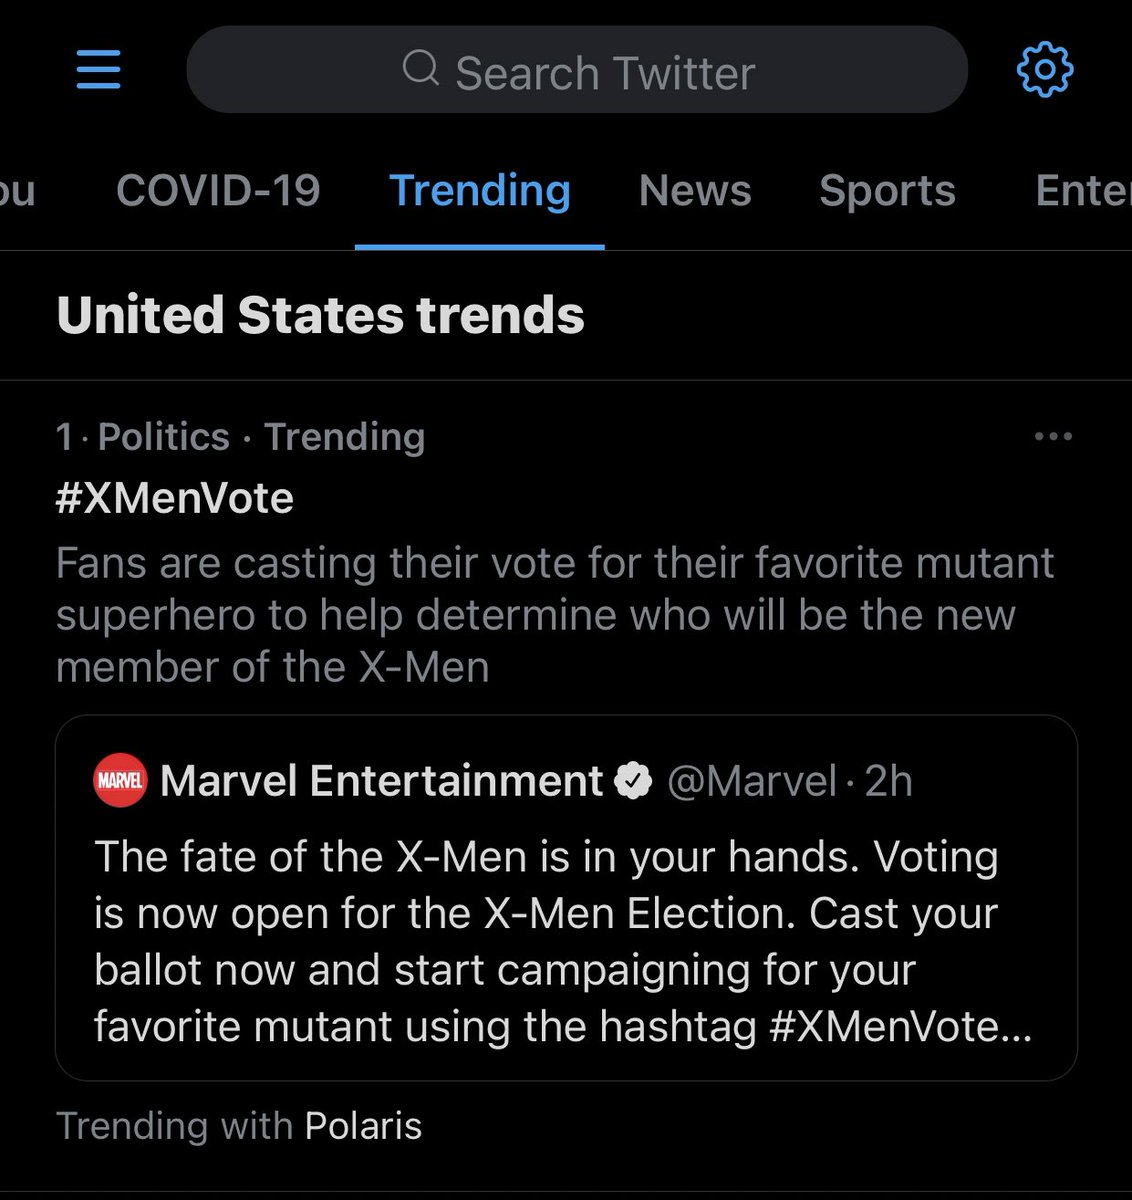 Wow, this is unexpected 😳 #XMenVote